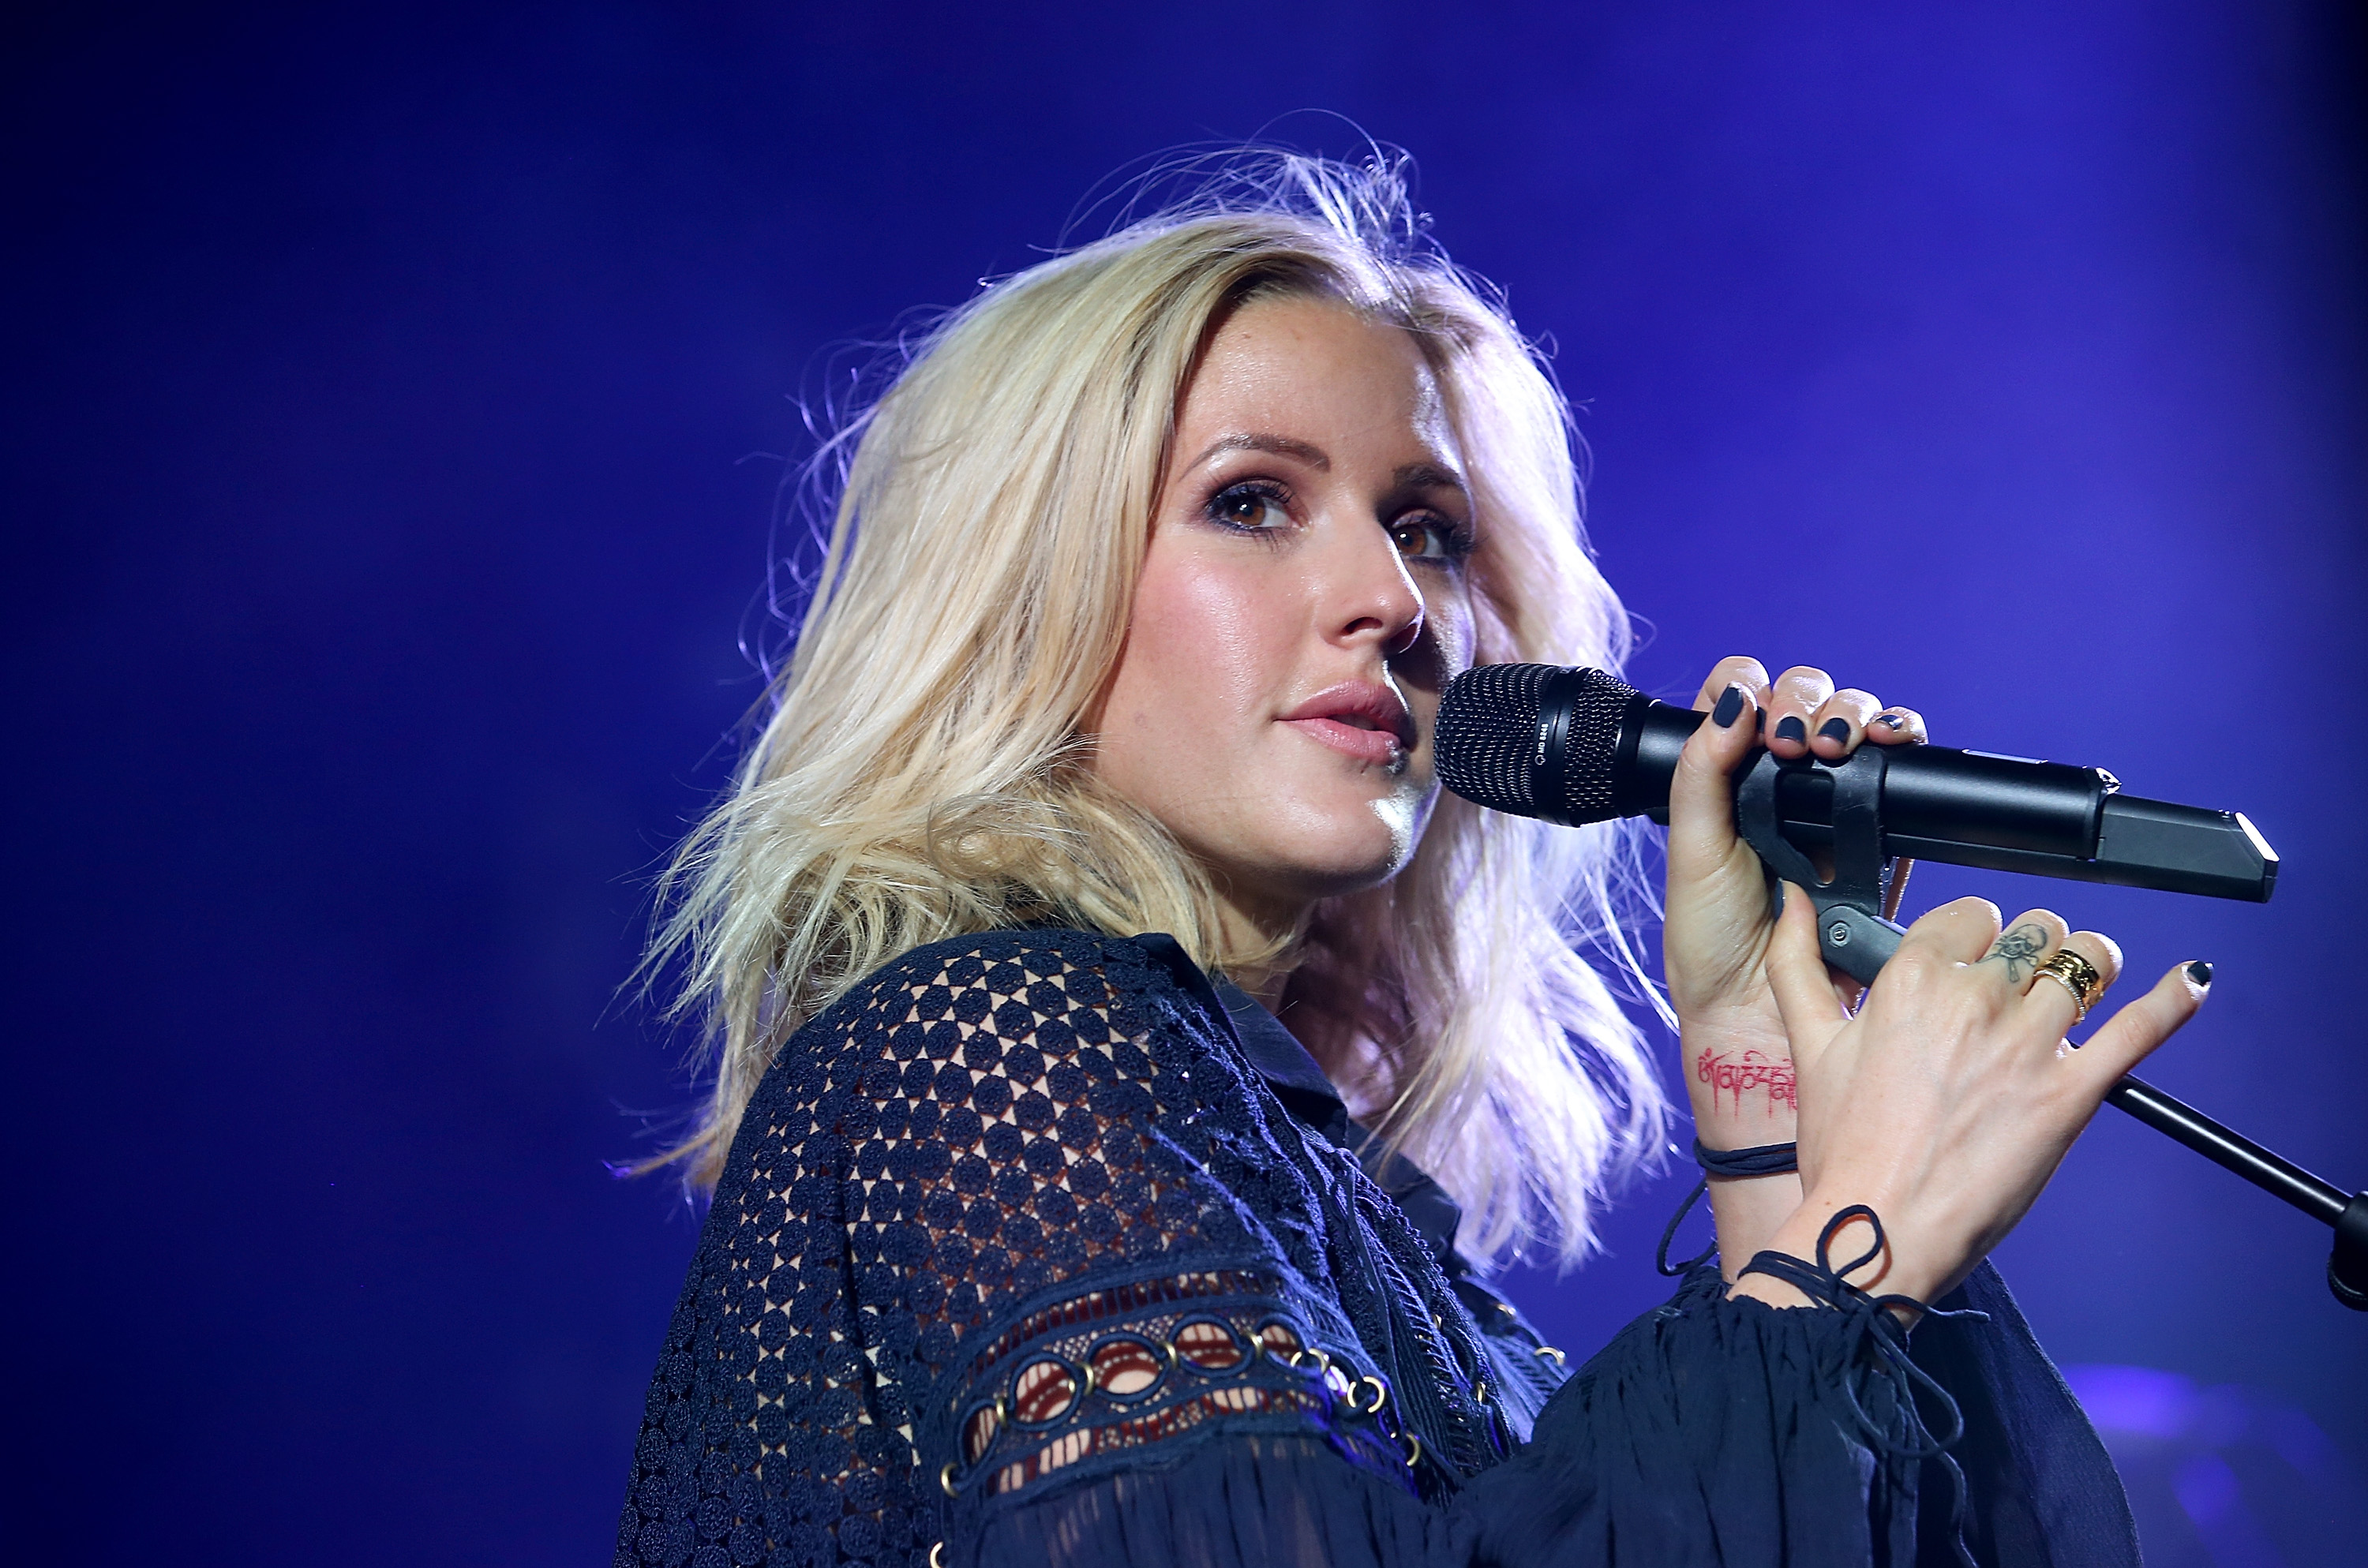 Ellie Goulding hs recorded a new track for the film (Picture: Chris Jackson/Getty Images for Marriott International & Universal Music Group)